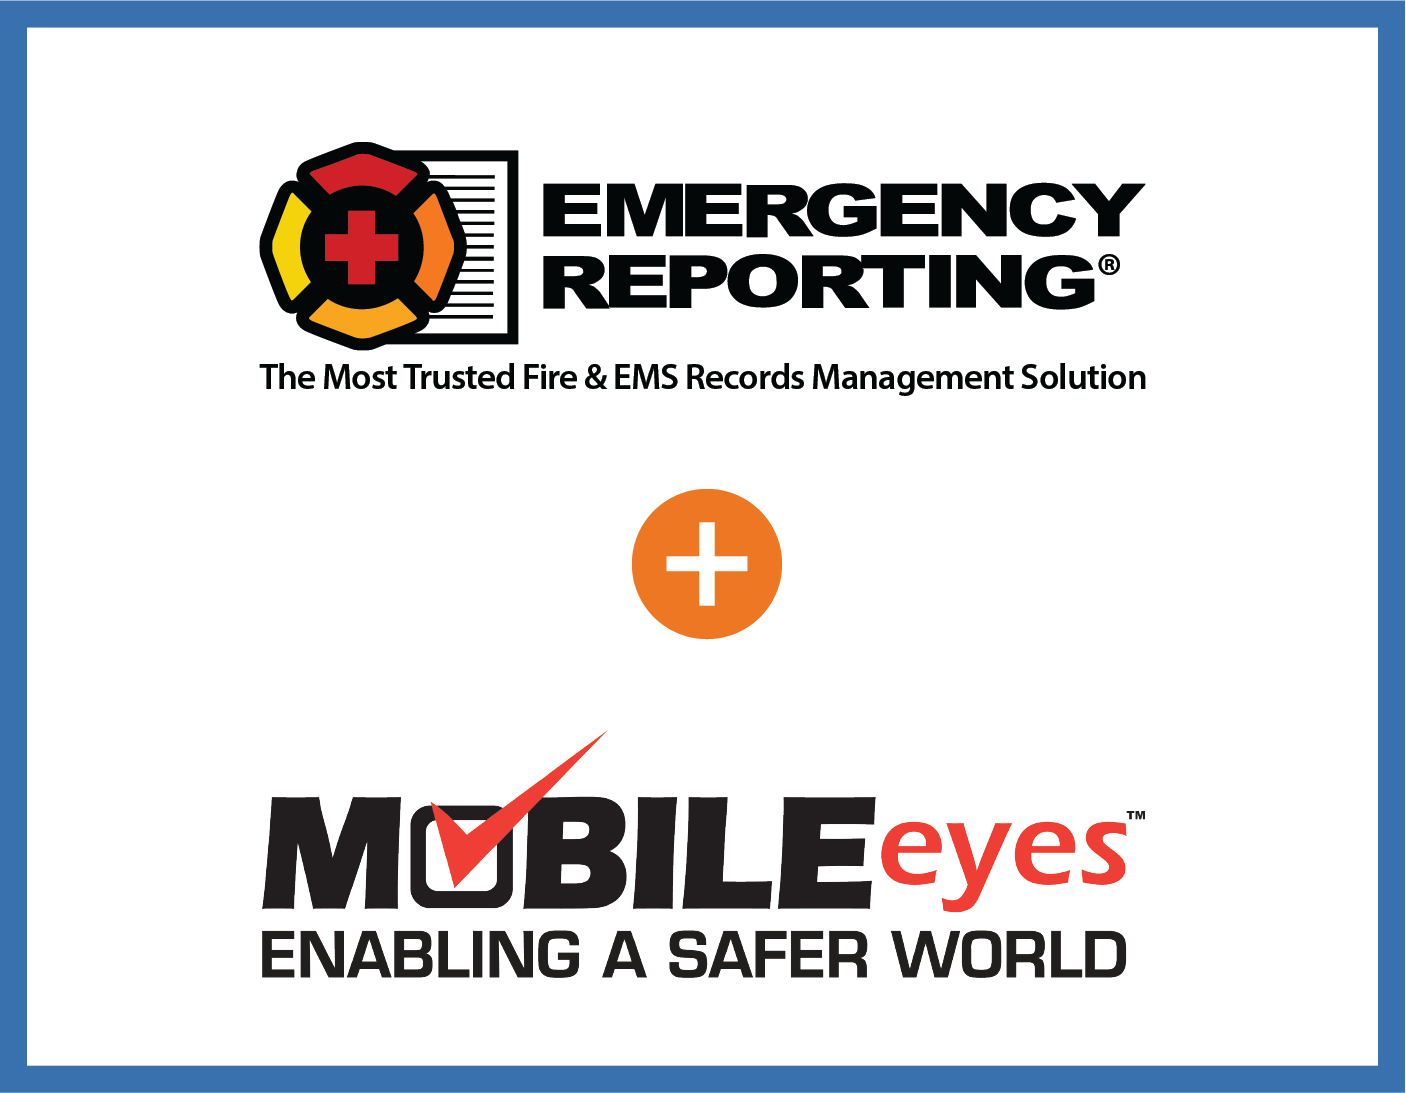 ER and MobileEyes_landingpageGraphic.png